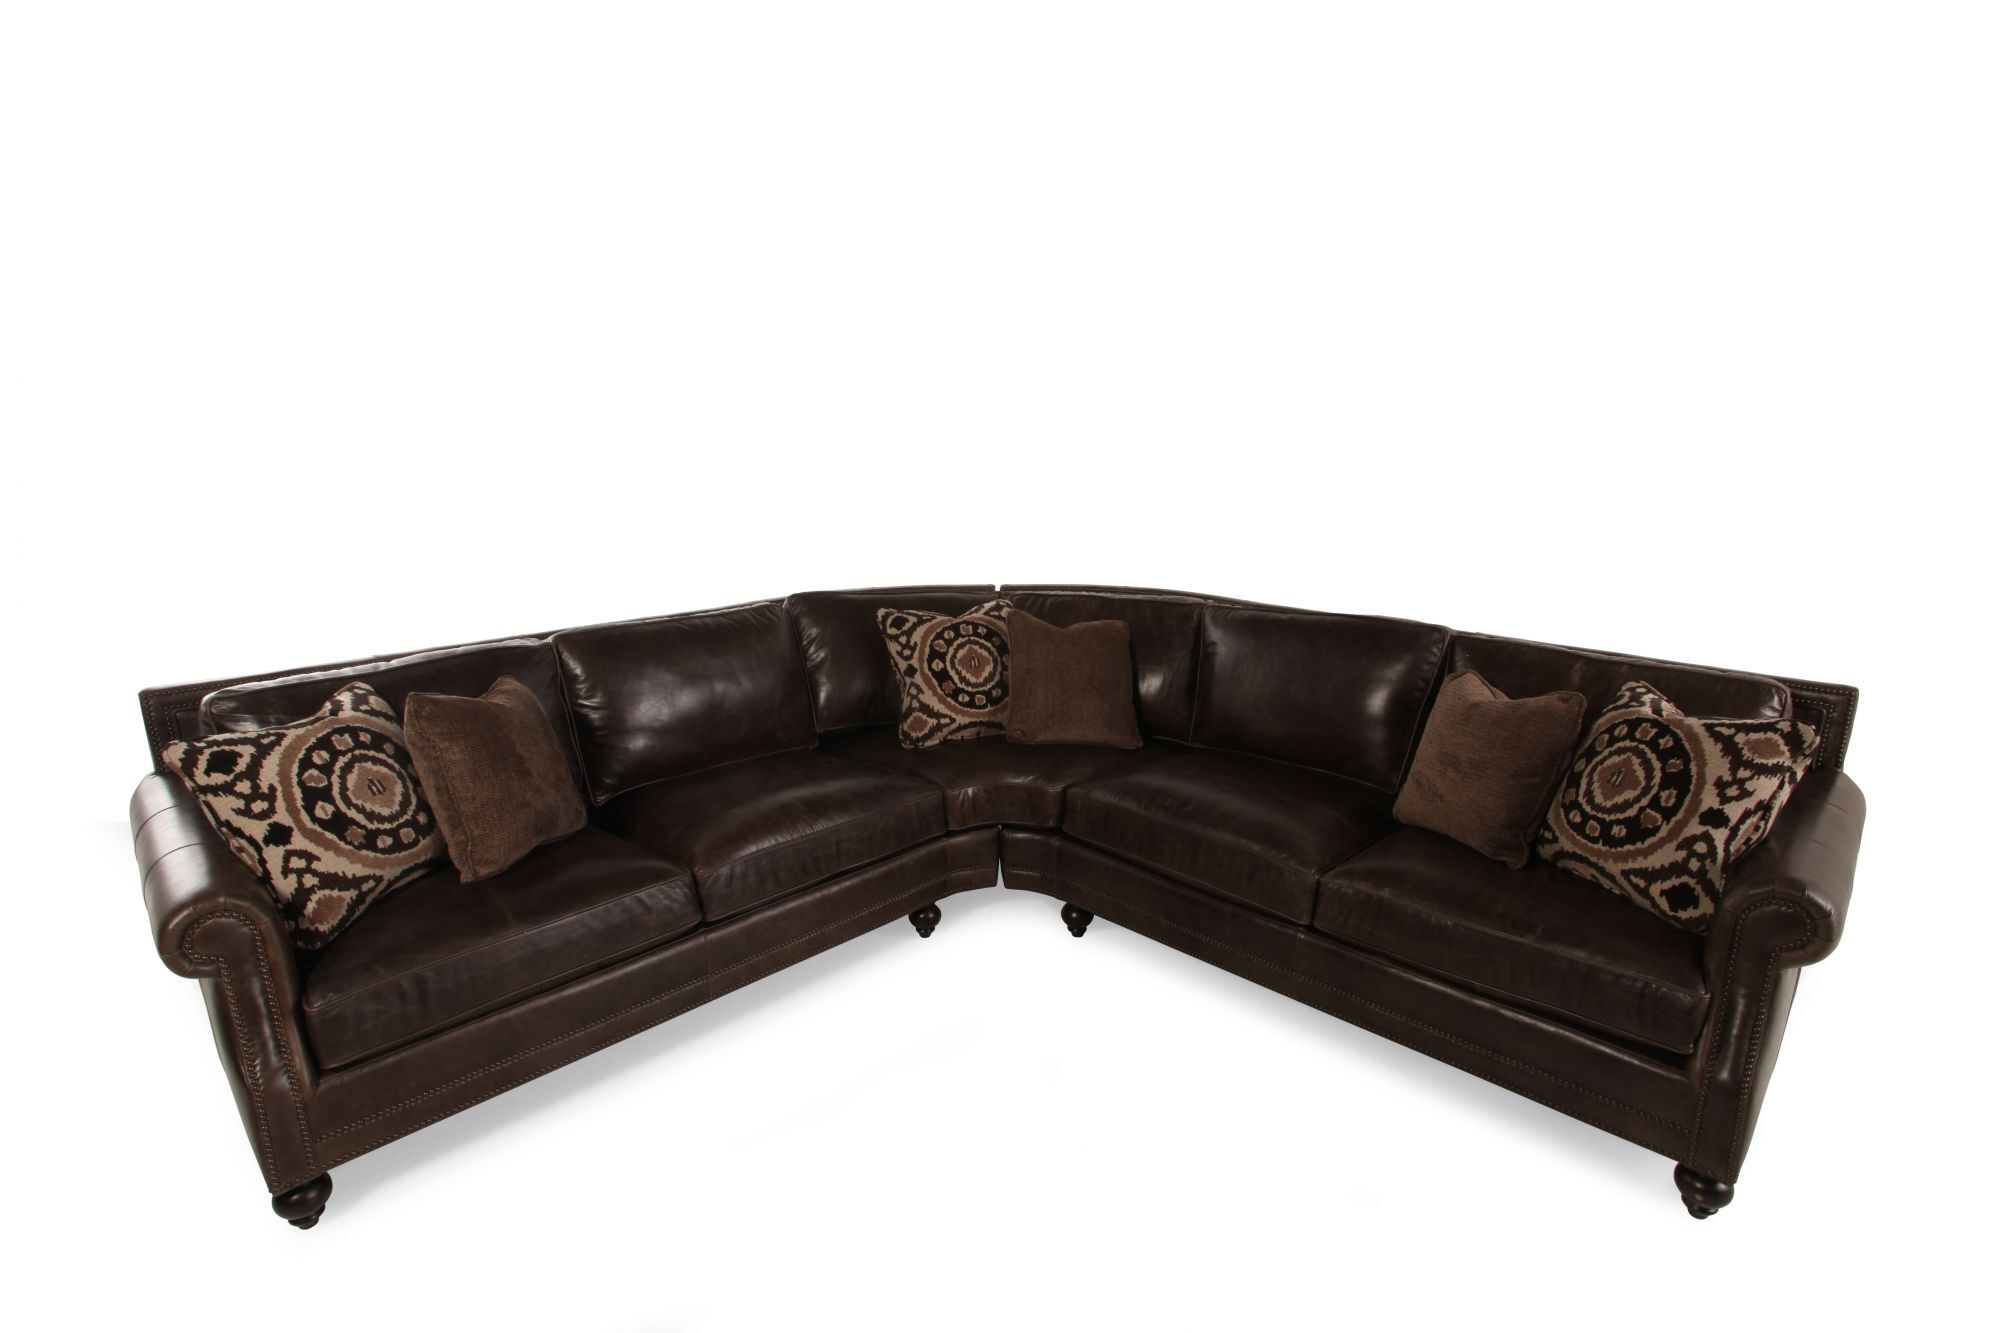 2 piece brown leather sofa theater in chennai two 119 quot sectional dark mathis